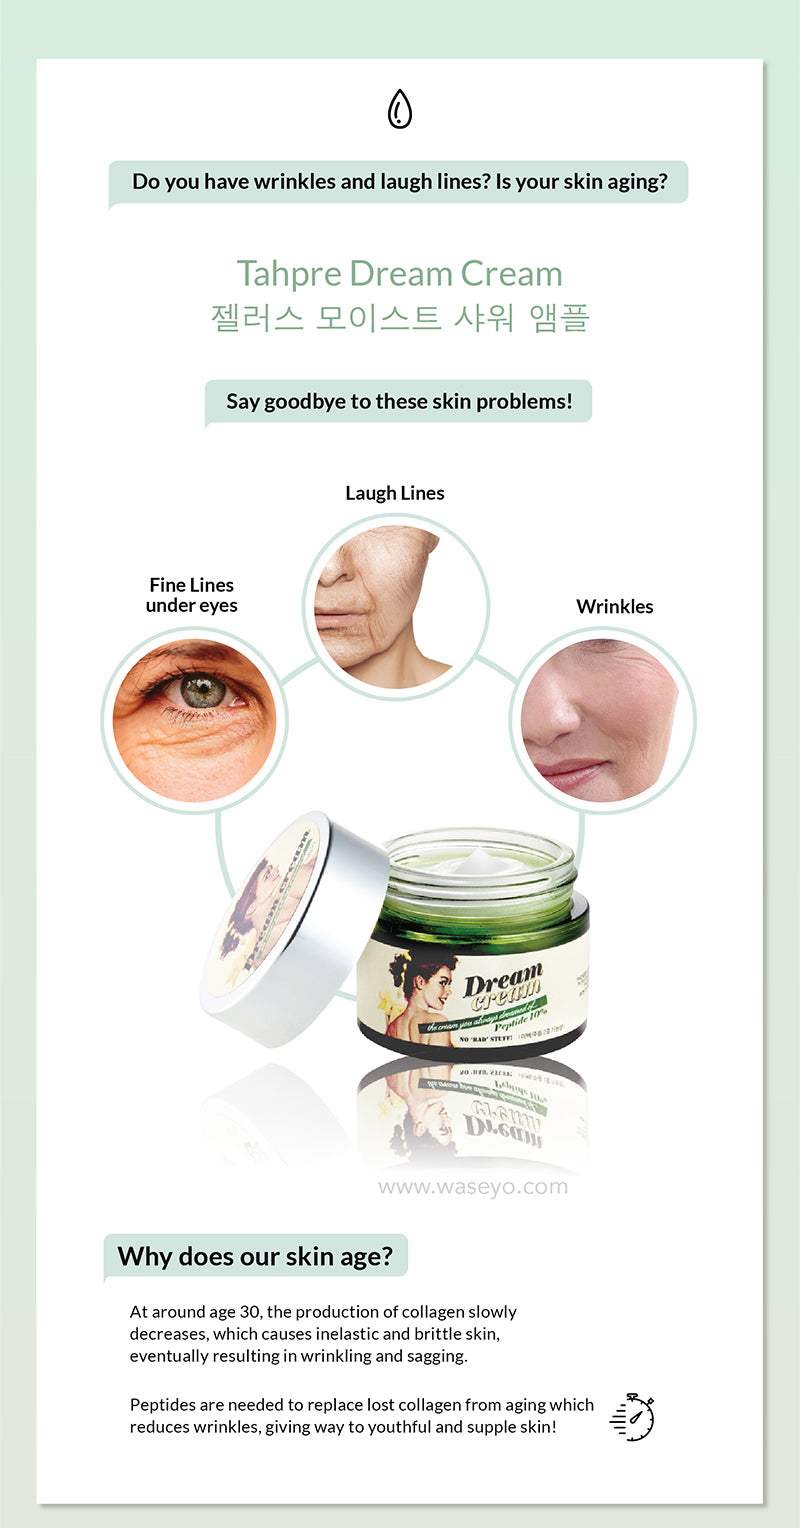 Say goodbye to aging skin with best anti aging cream Tahpre Dream Cream. Why does our skin age? Production of collagen slows and and results in inelastic skin and hence wrinkle and sagging. Peptides are required to replace lost collagen for anti aging and wrinkle treatment.